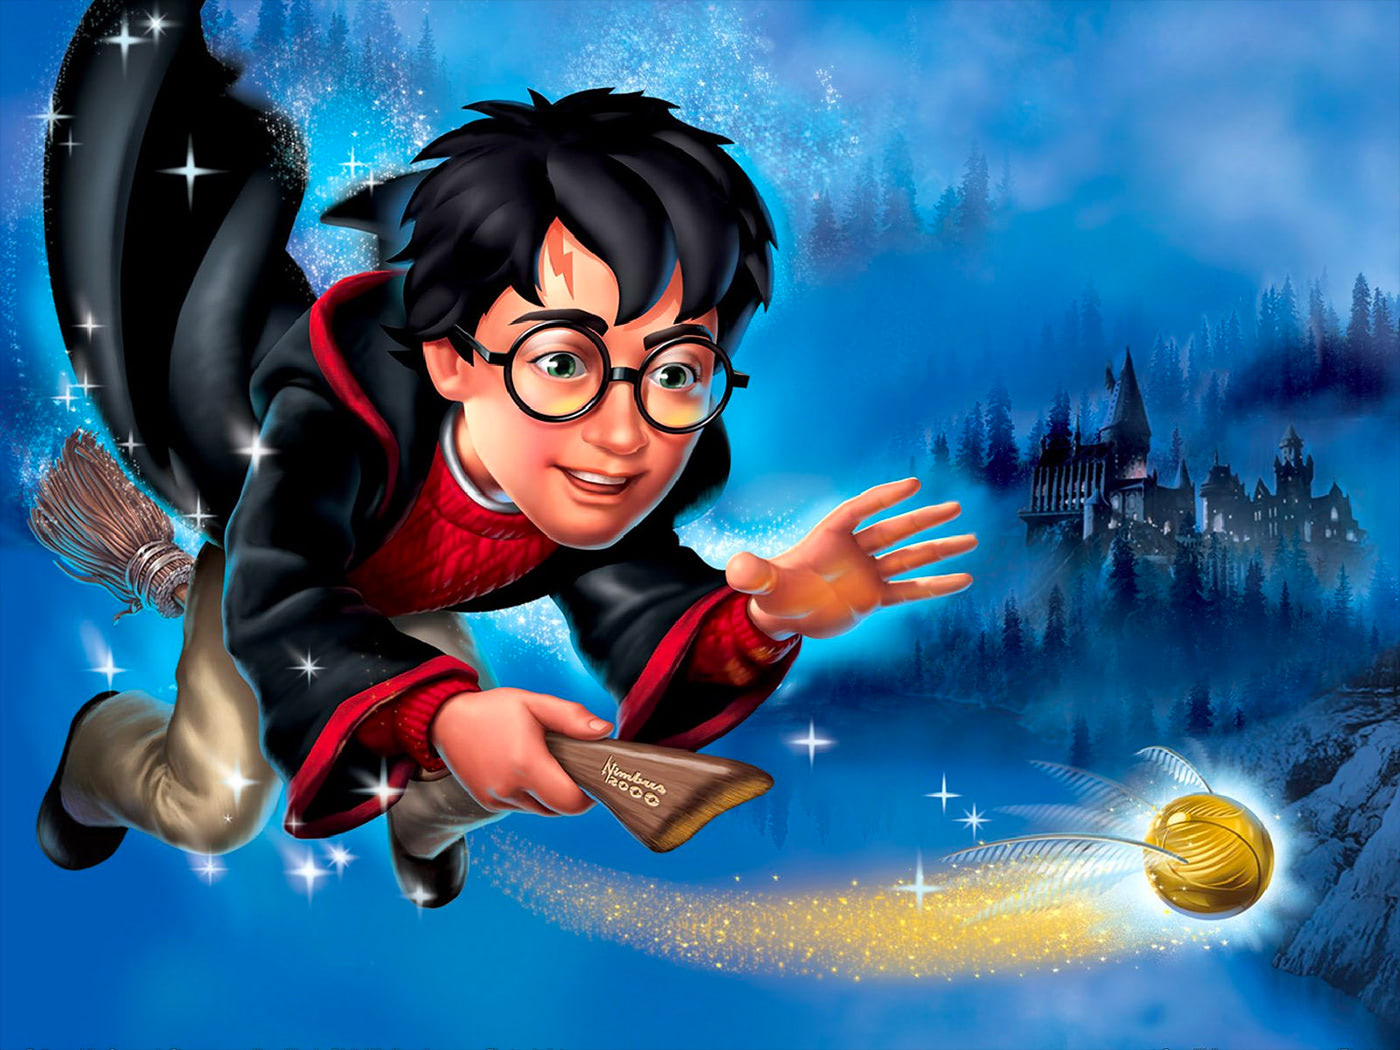 Sorcerer's Stone video game promotional artwork